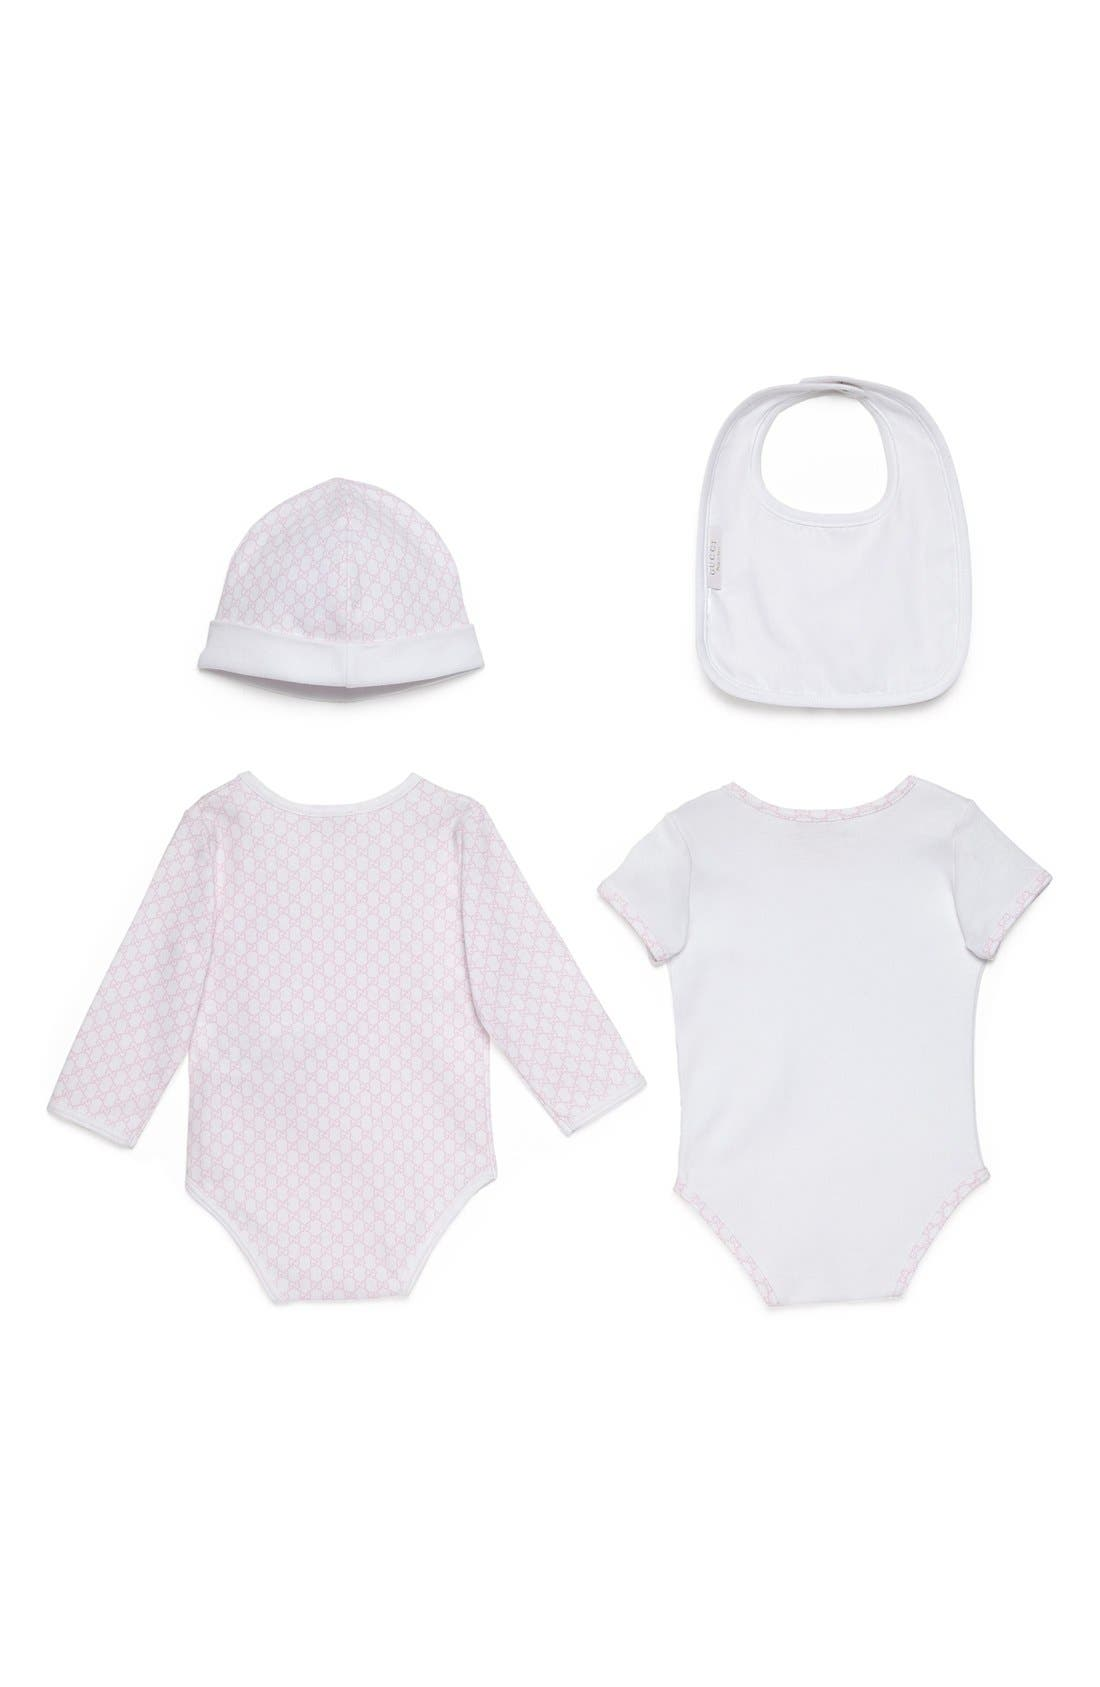 Alternate Image 2  - Gucci Short Sleeve Bodysuit, Long Sleeve Bodysuit, Hat & Bib Set (Baby)